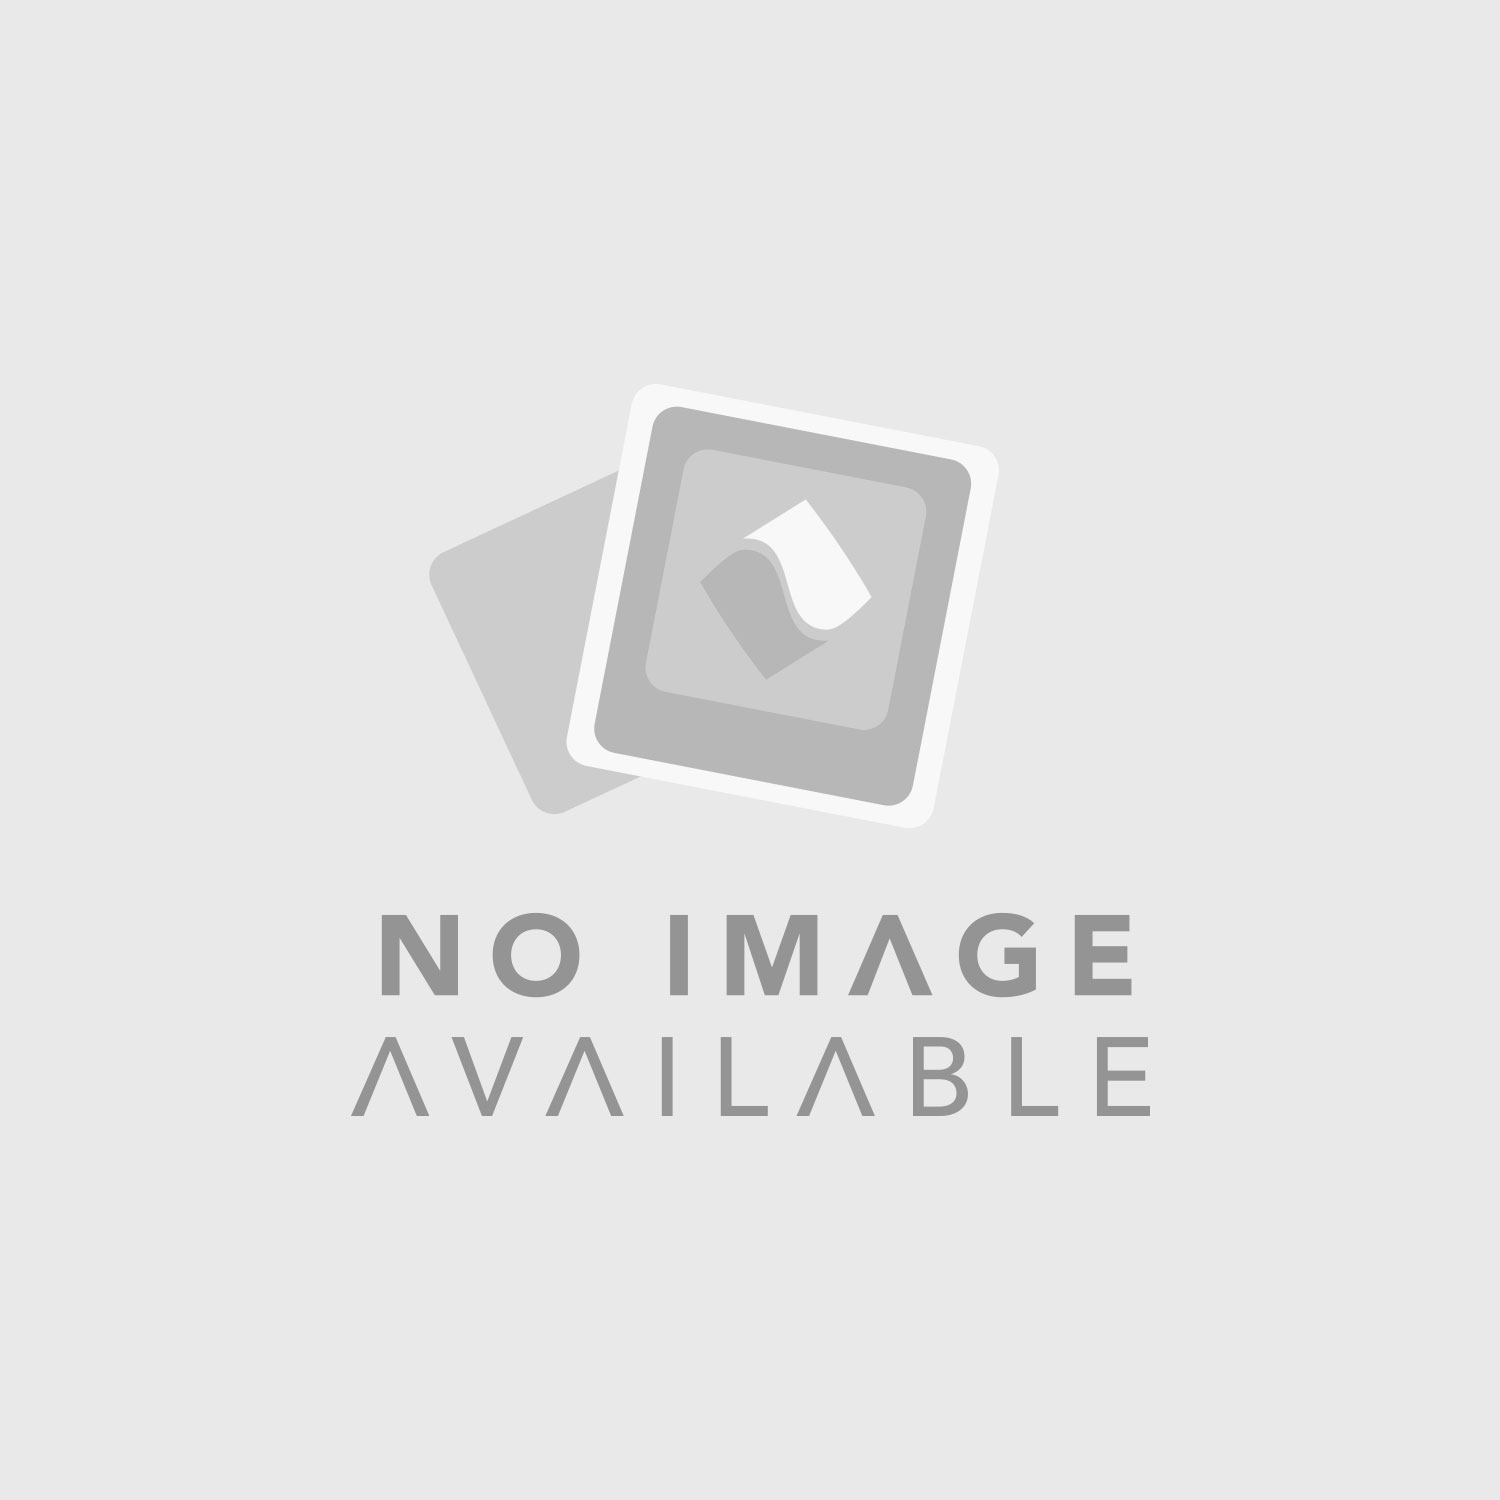 Rode RodeCaster Pro Ultimate 4 Guest Podcasting Bundle with PodMics (O.C. White Boom Arms)